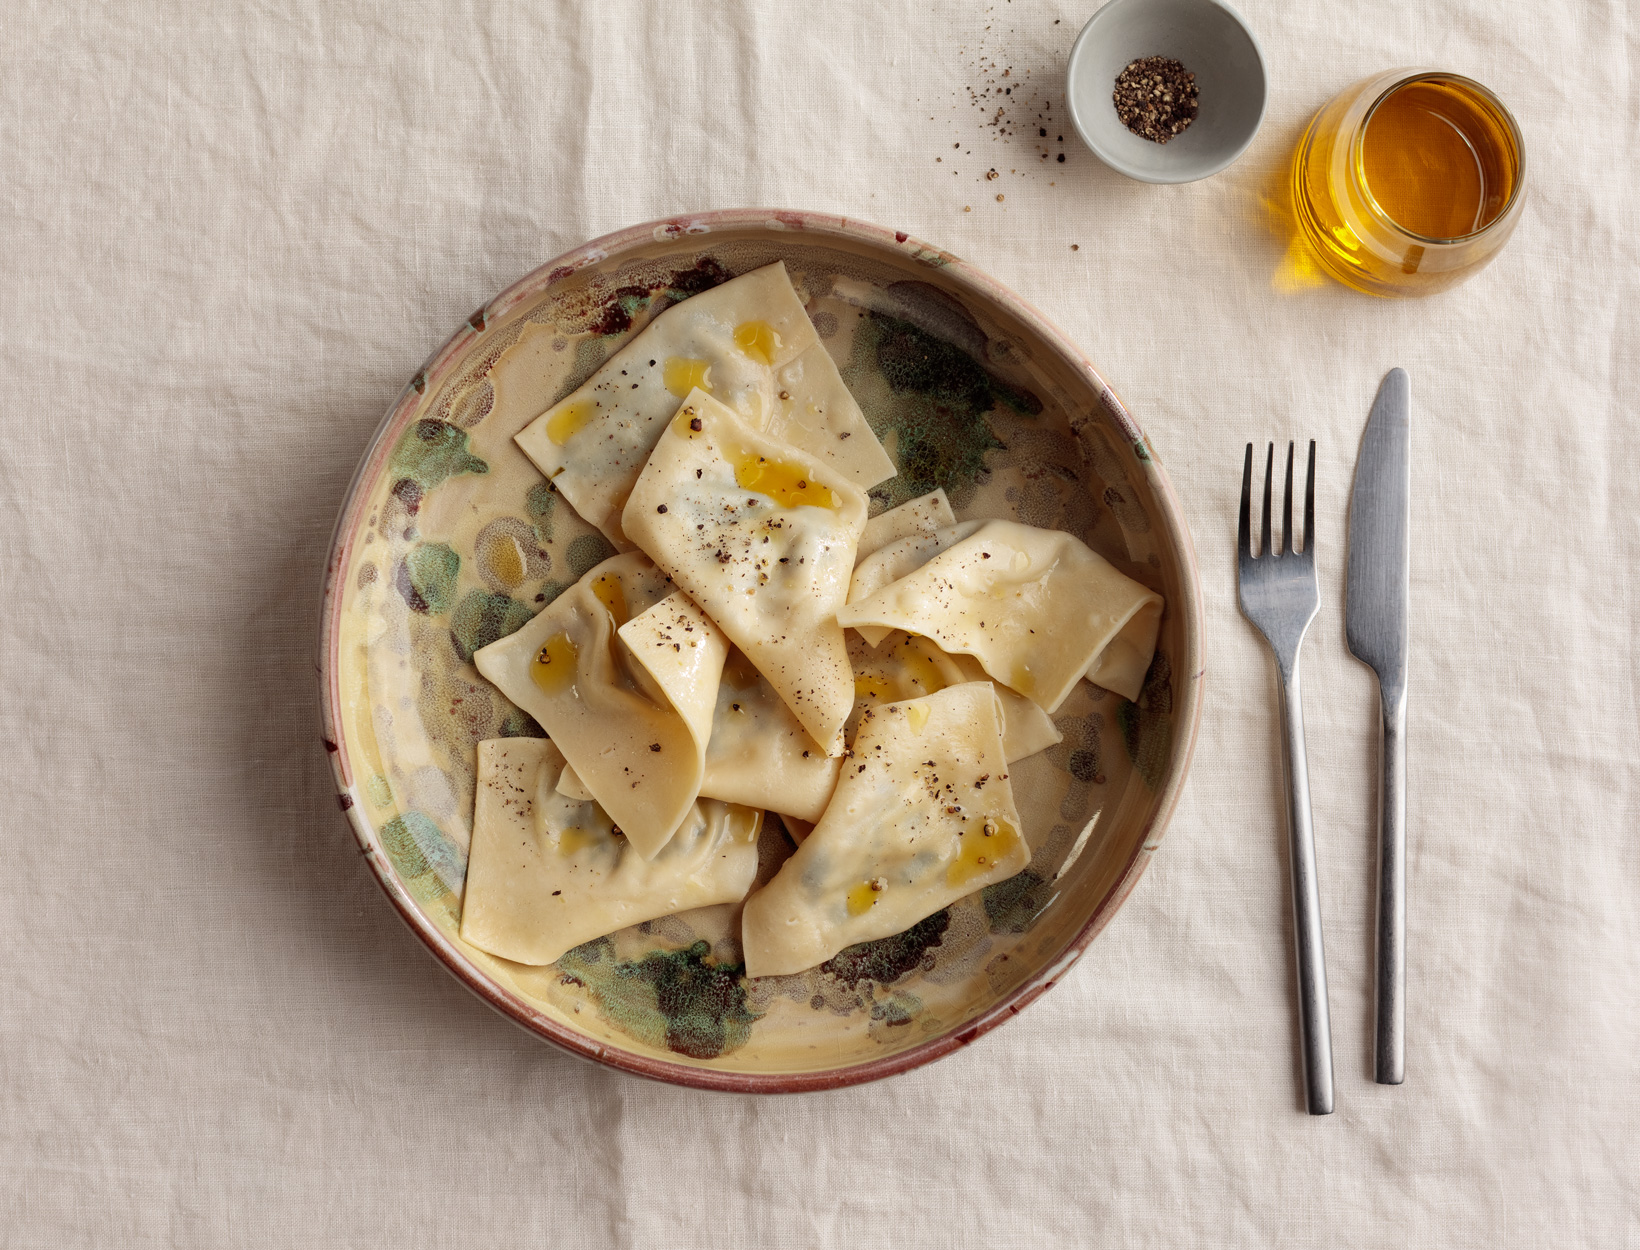 Mushroom, Greens, and Goat Cheese Ravioli